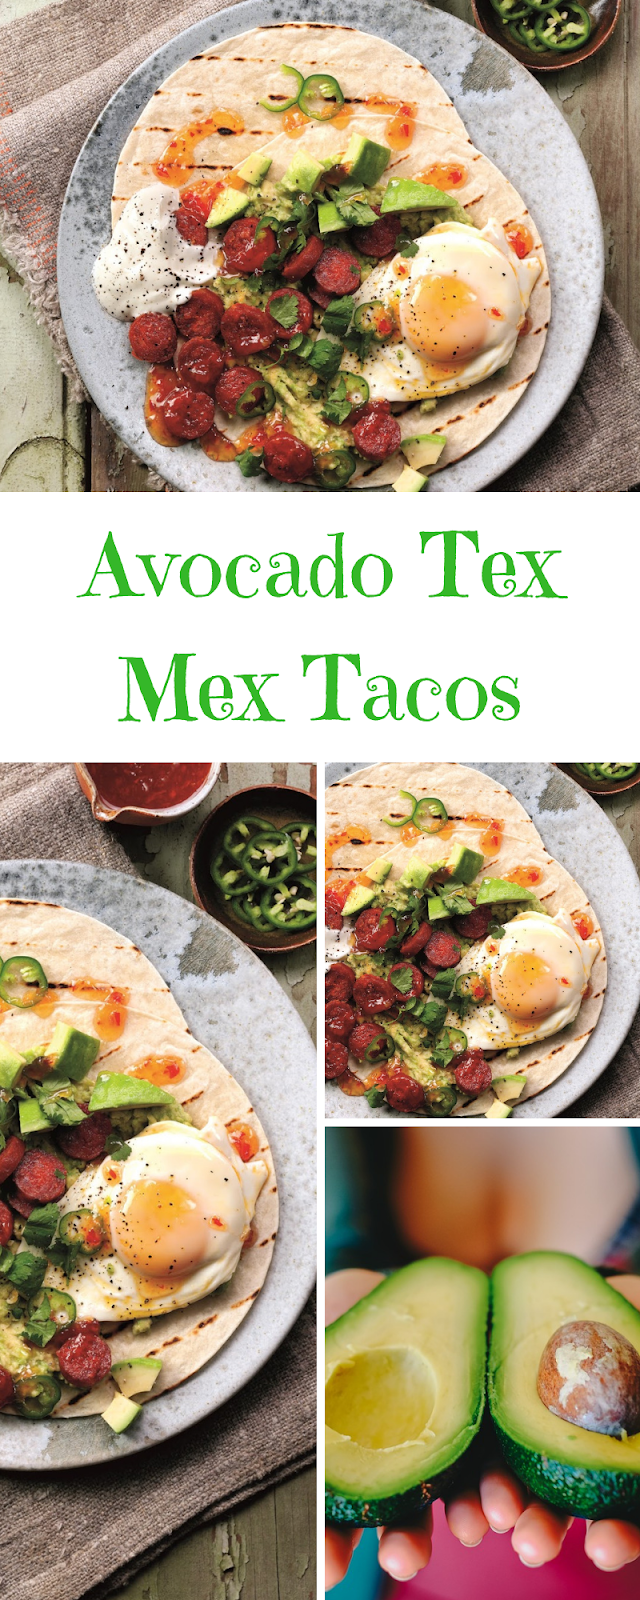 Avocado Tex Mex Tacos